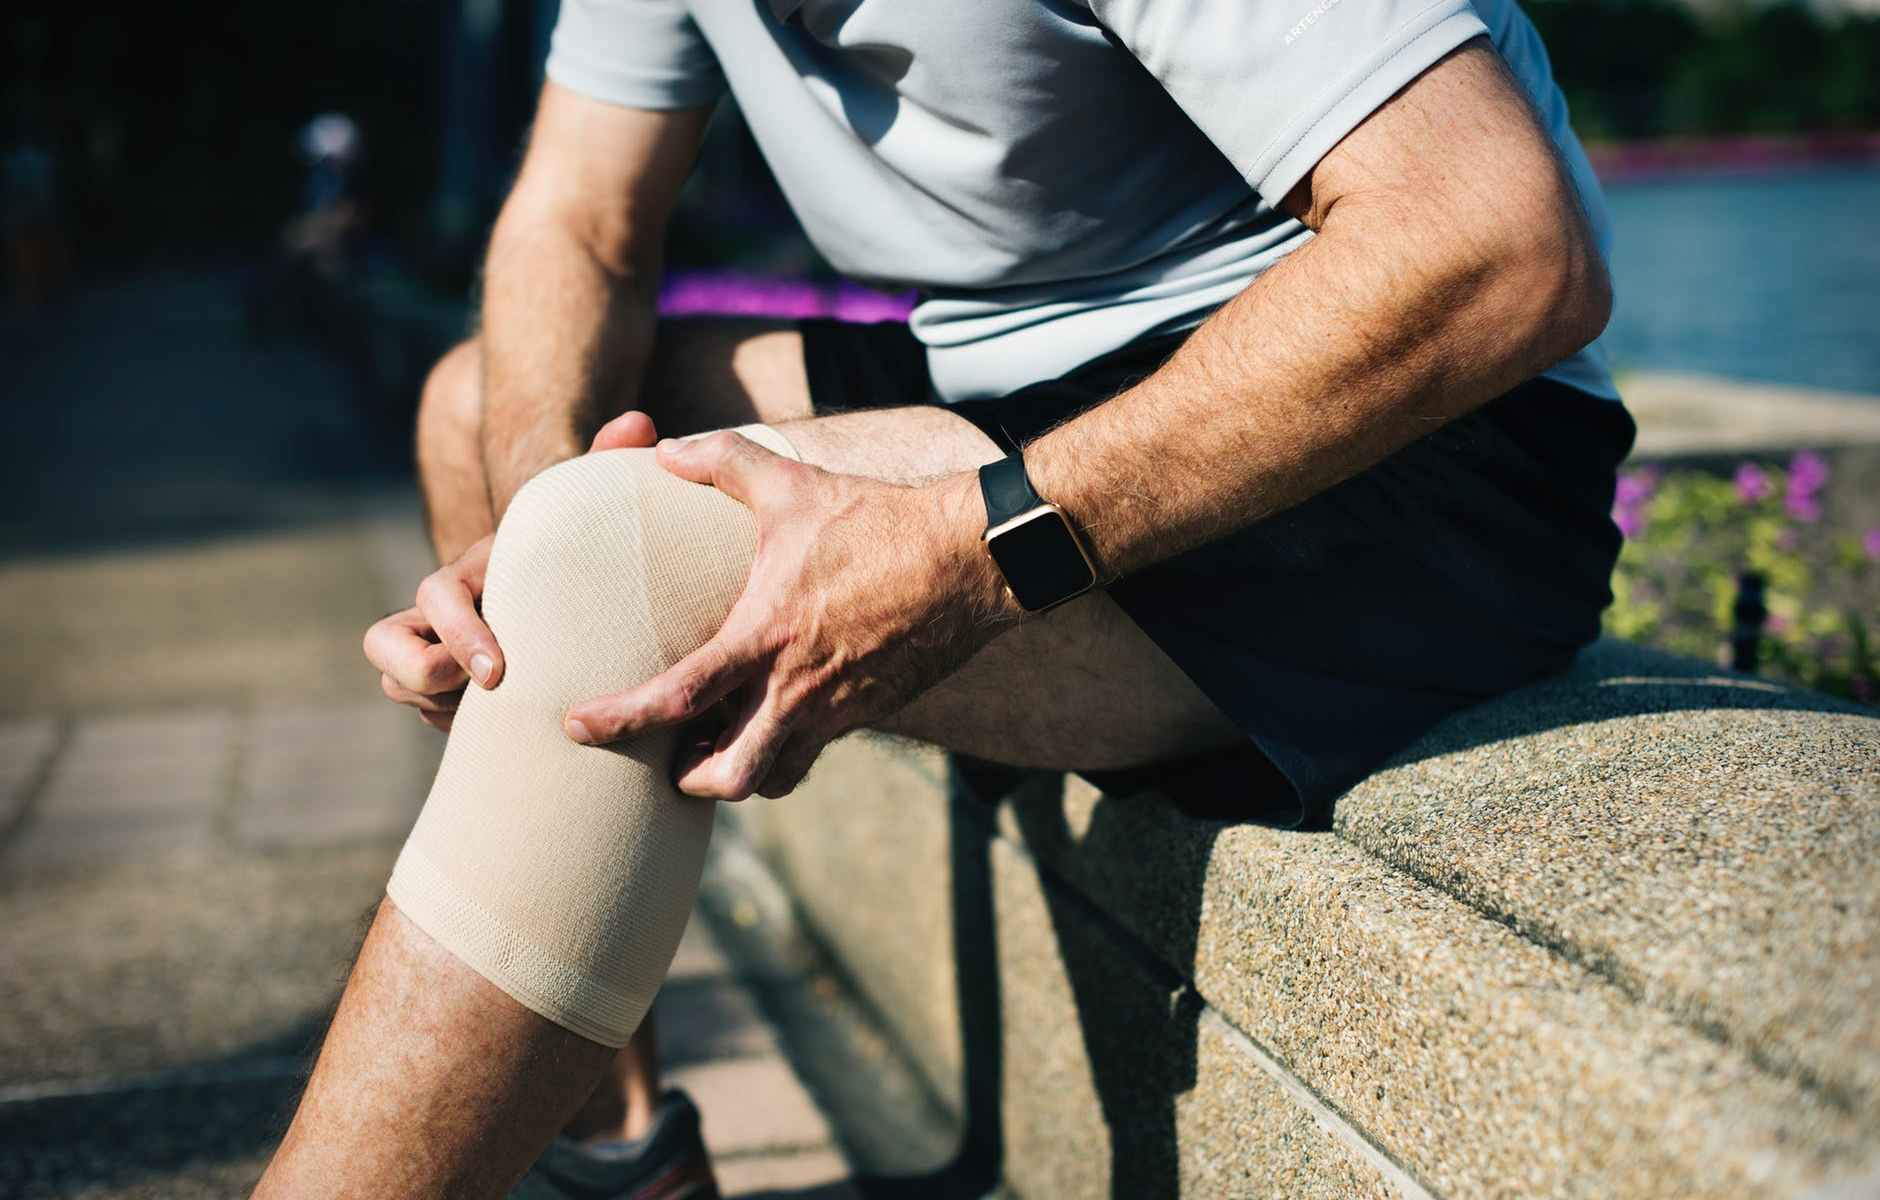 A man covering his left knee